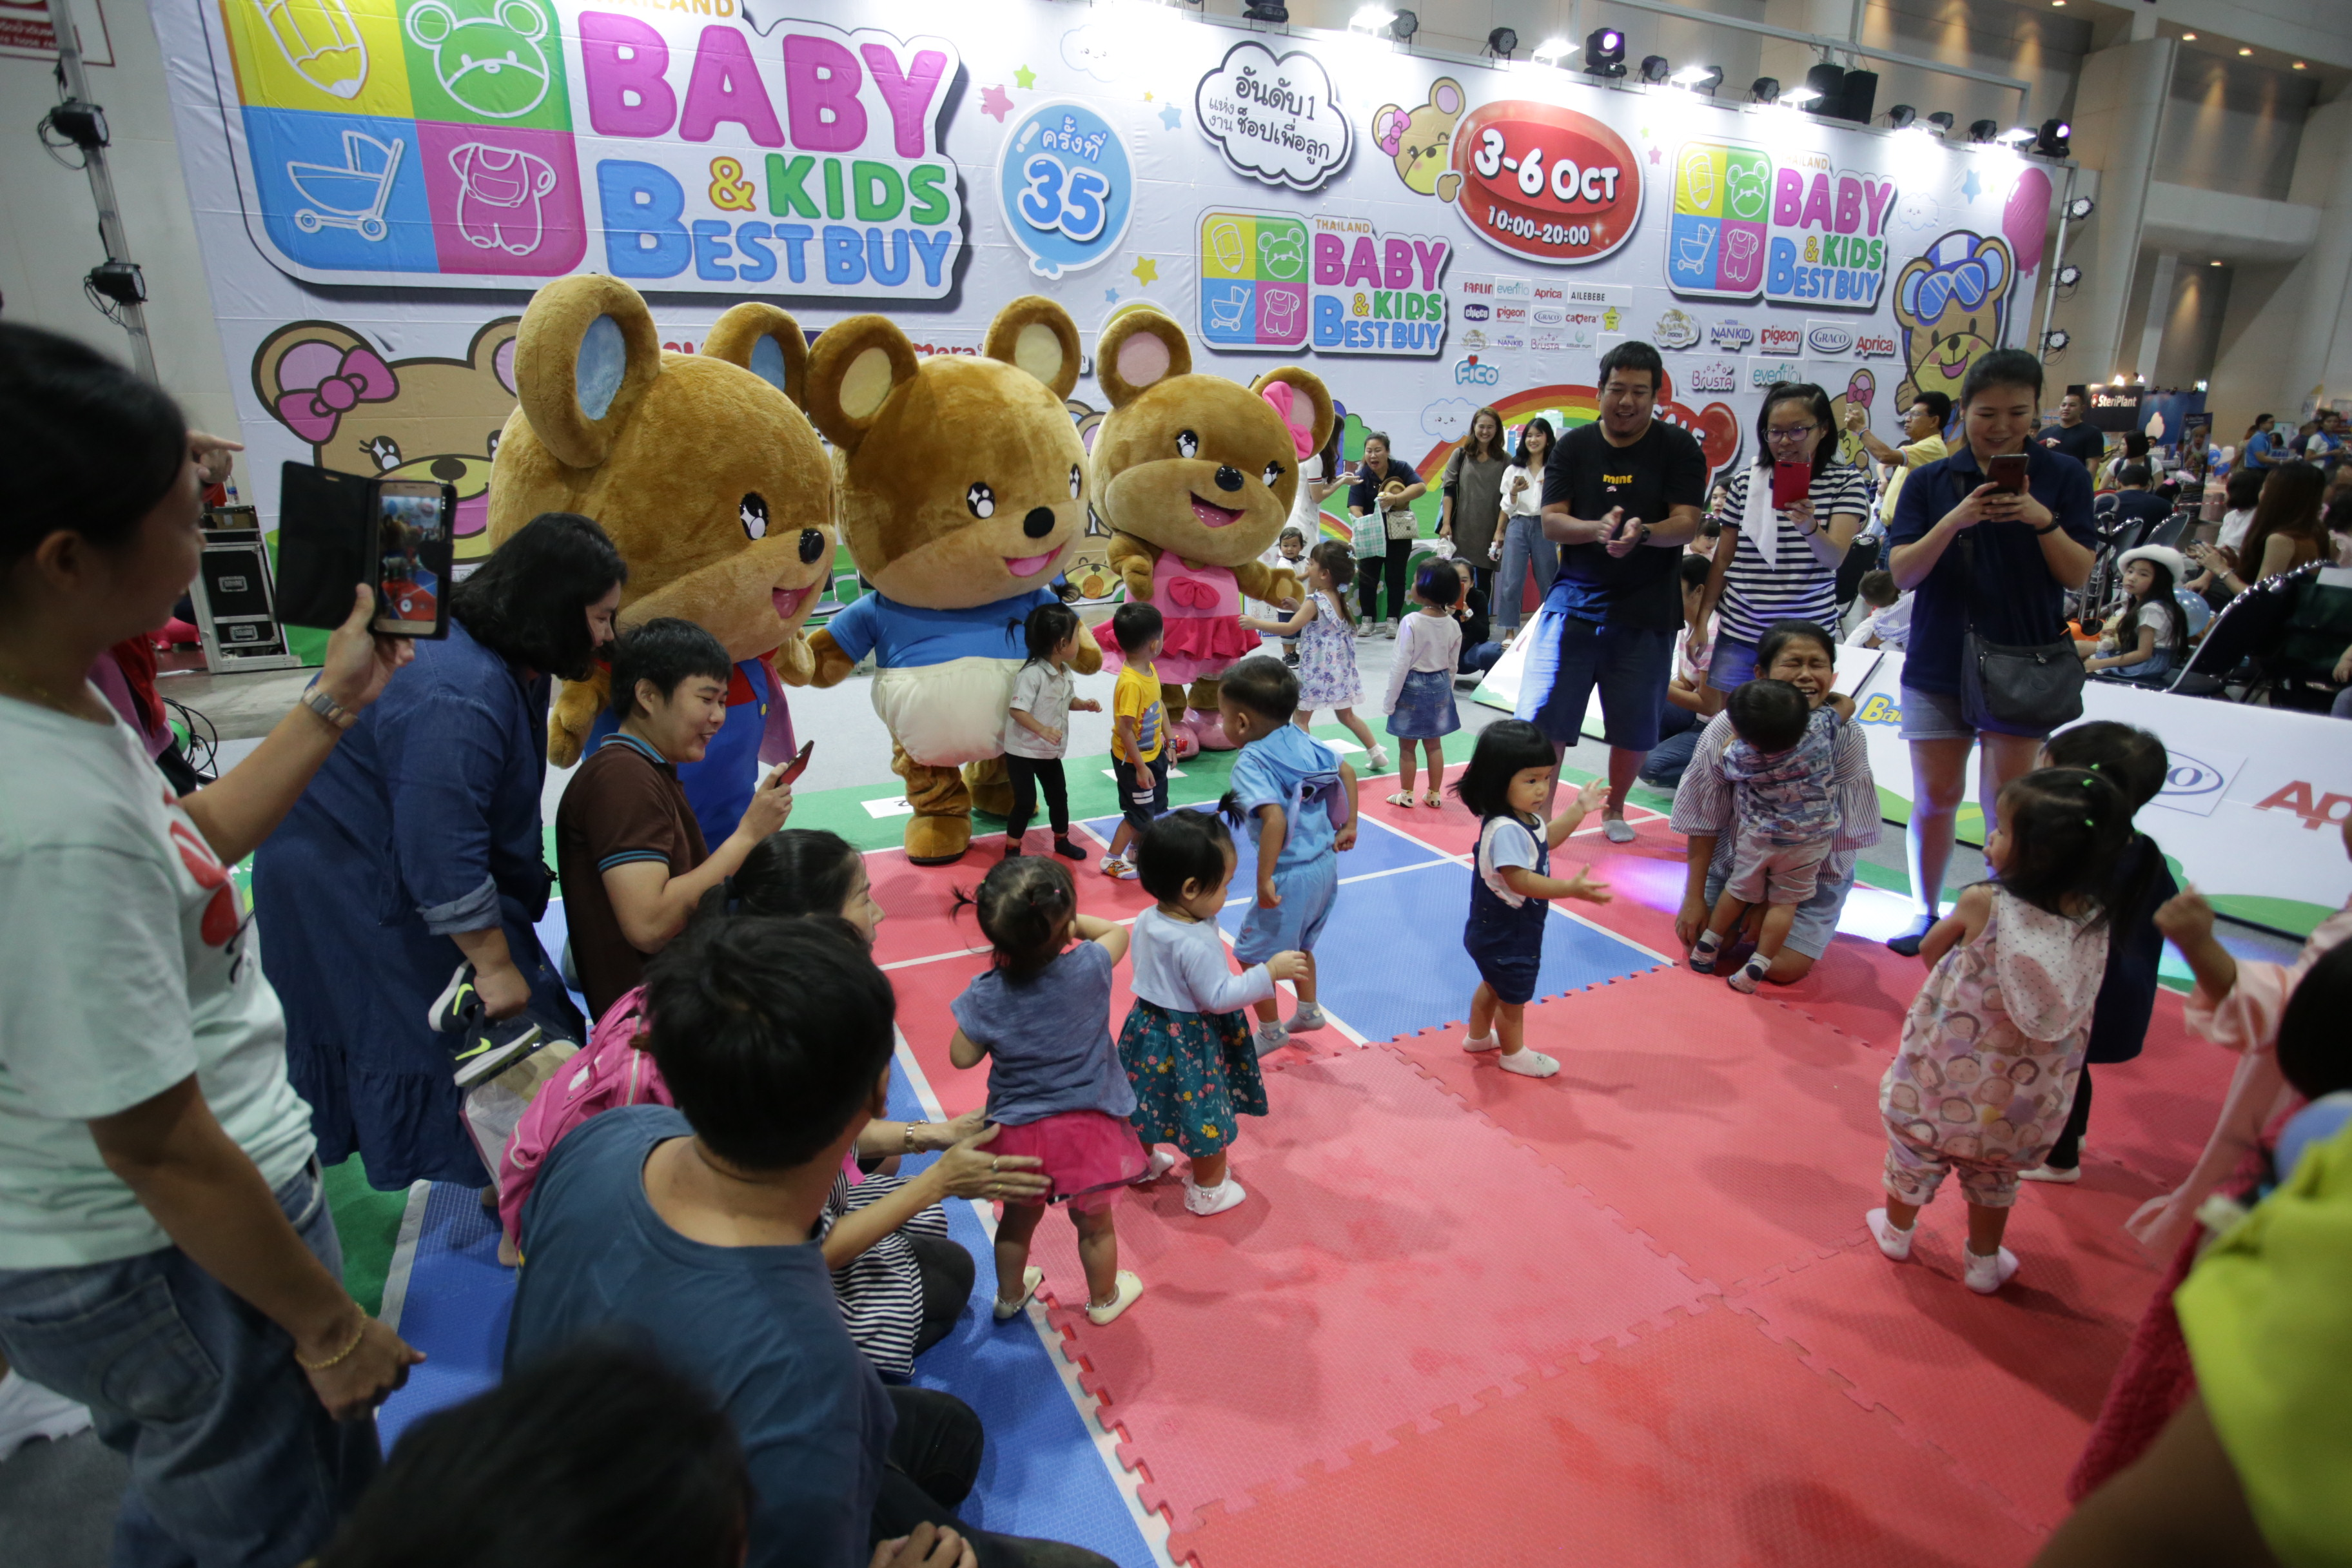 Thailand Baby & Kids Best Buy ครั้งที่ 35